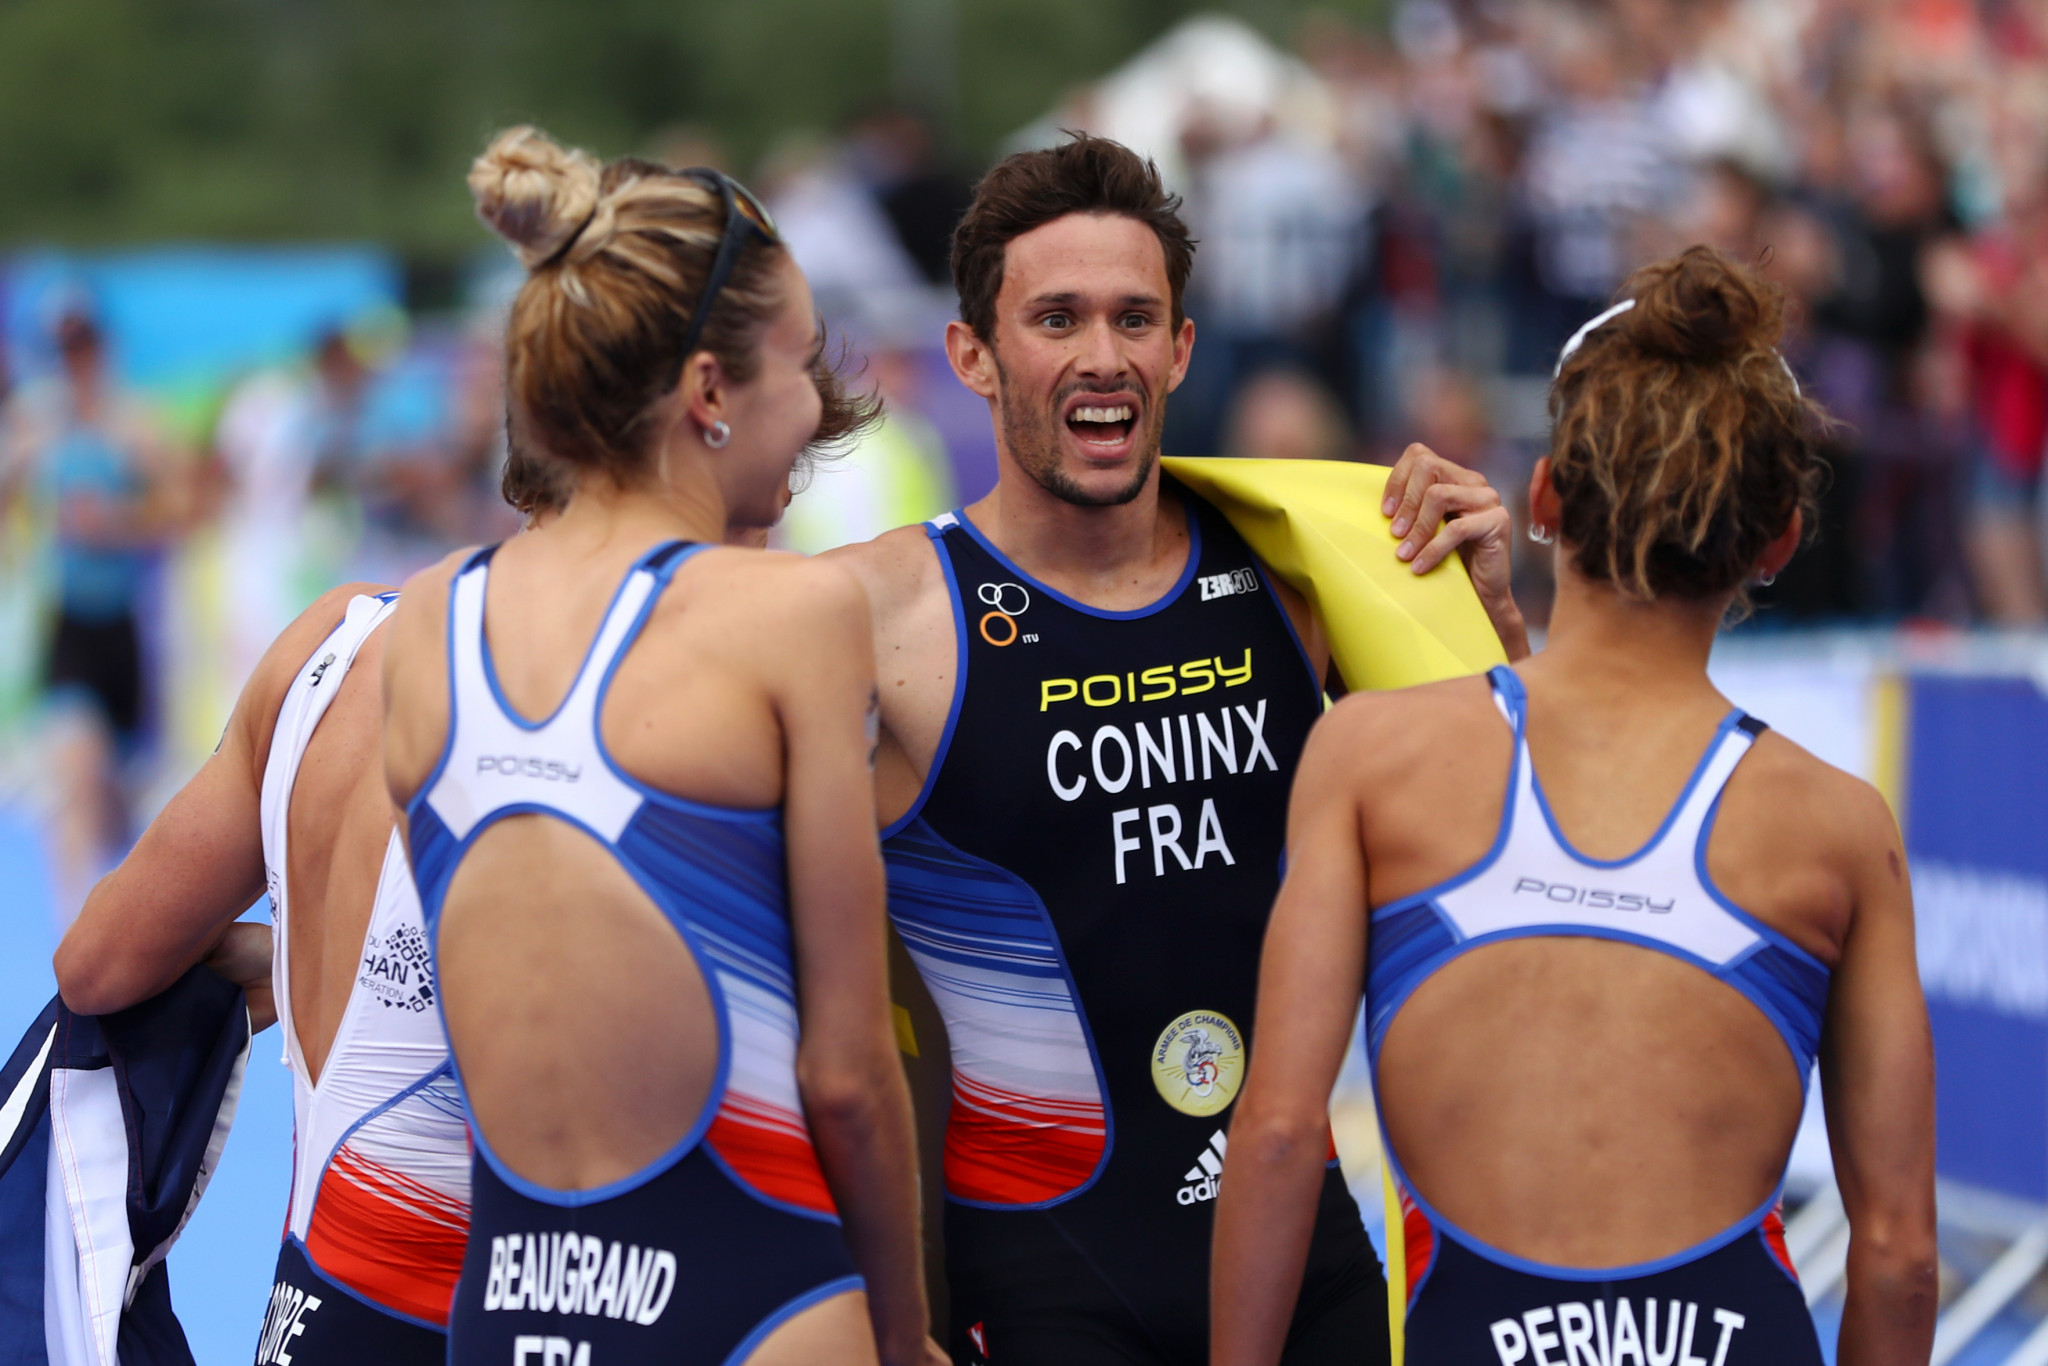 Dorian Coninx wrapped up world champions France's success in the mixed team relay triathlon event